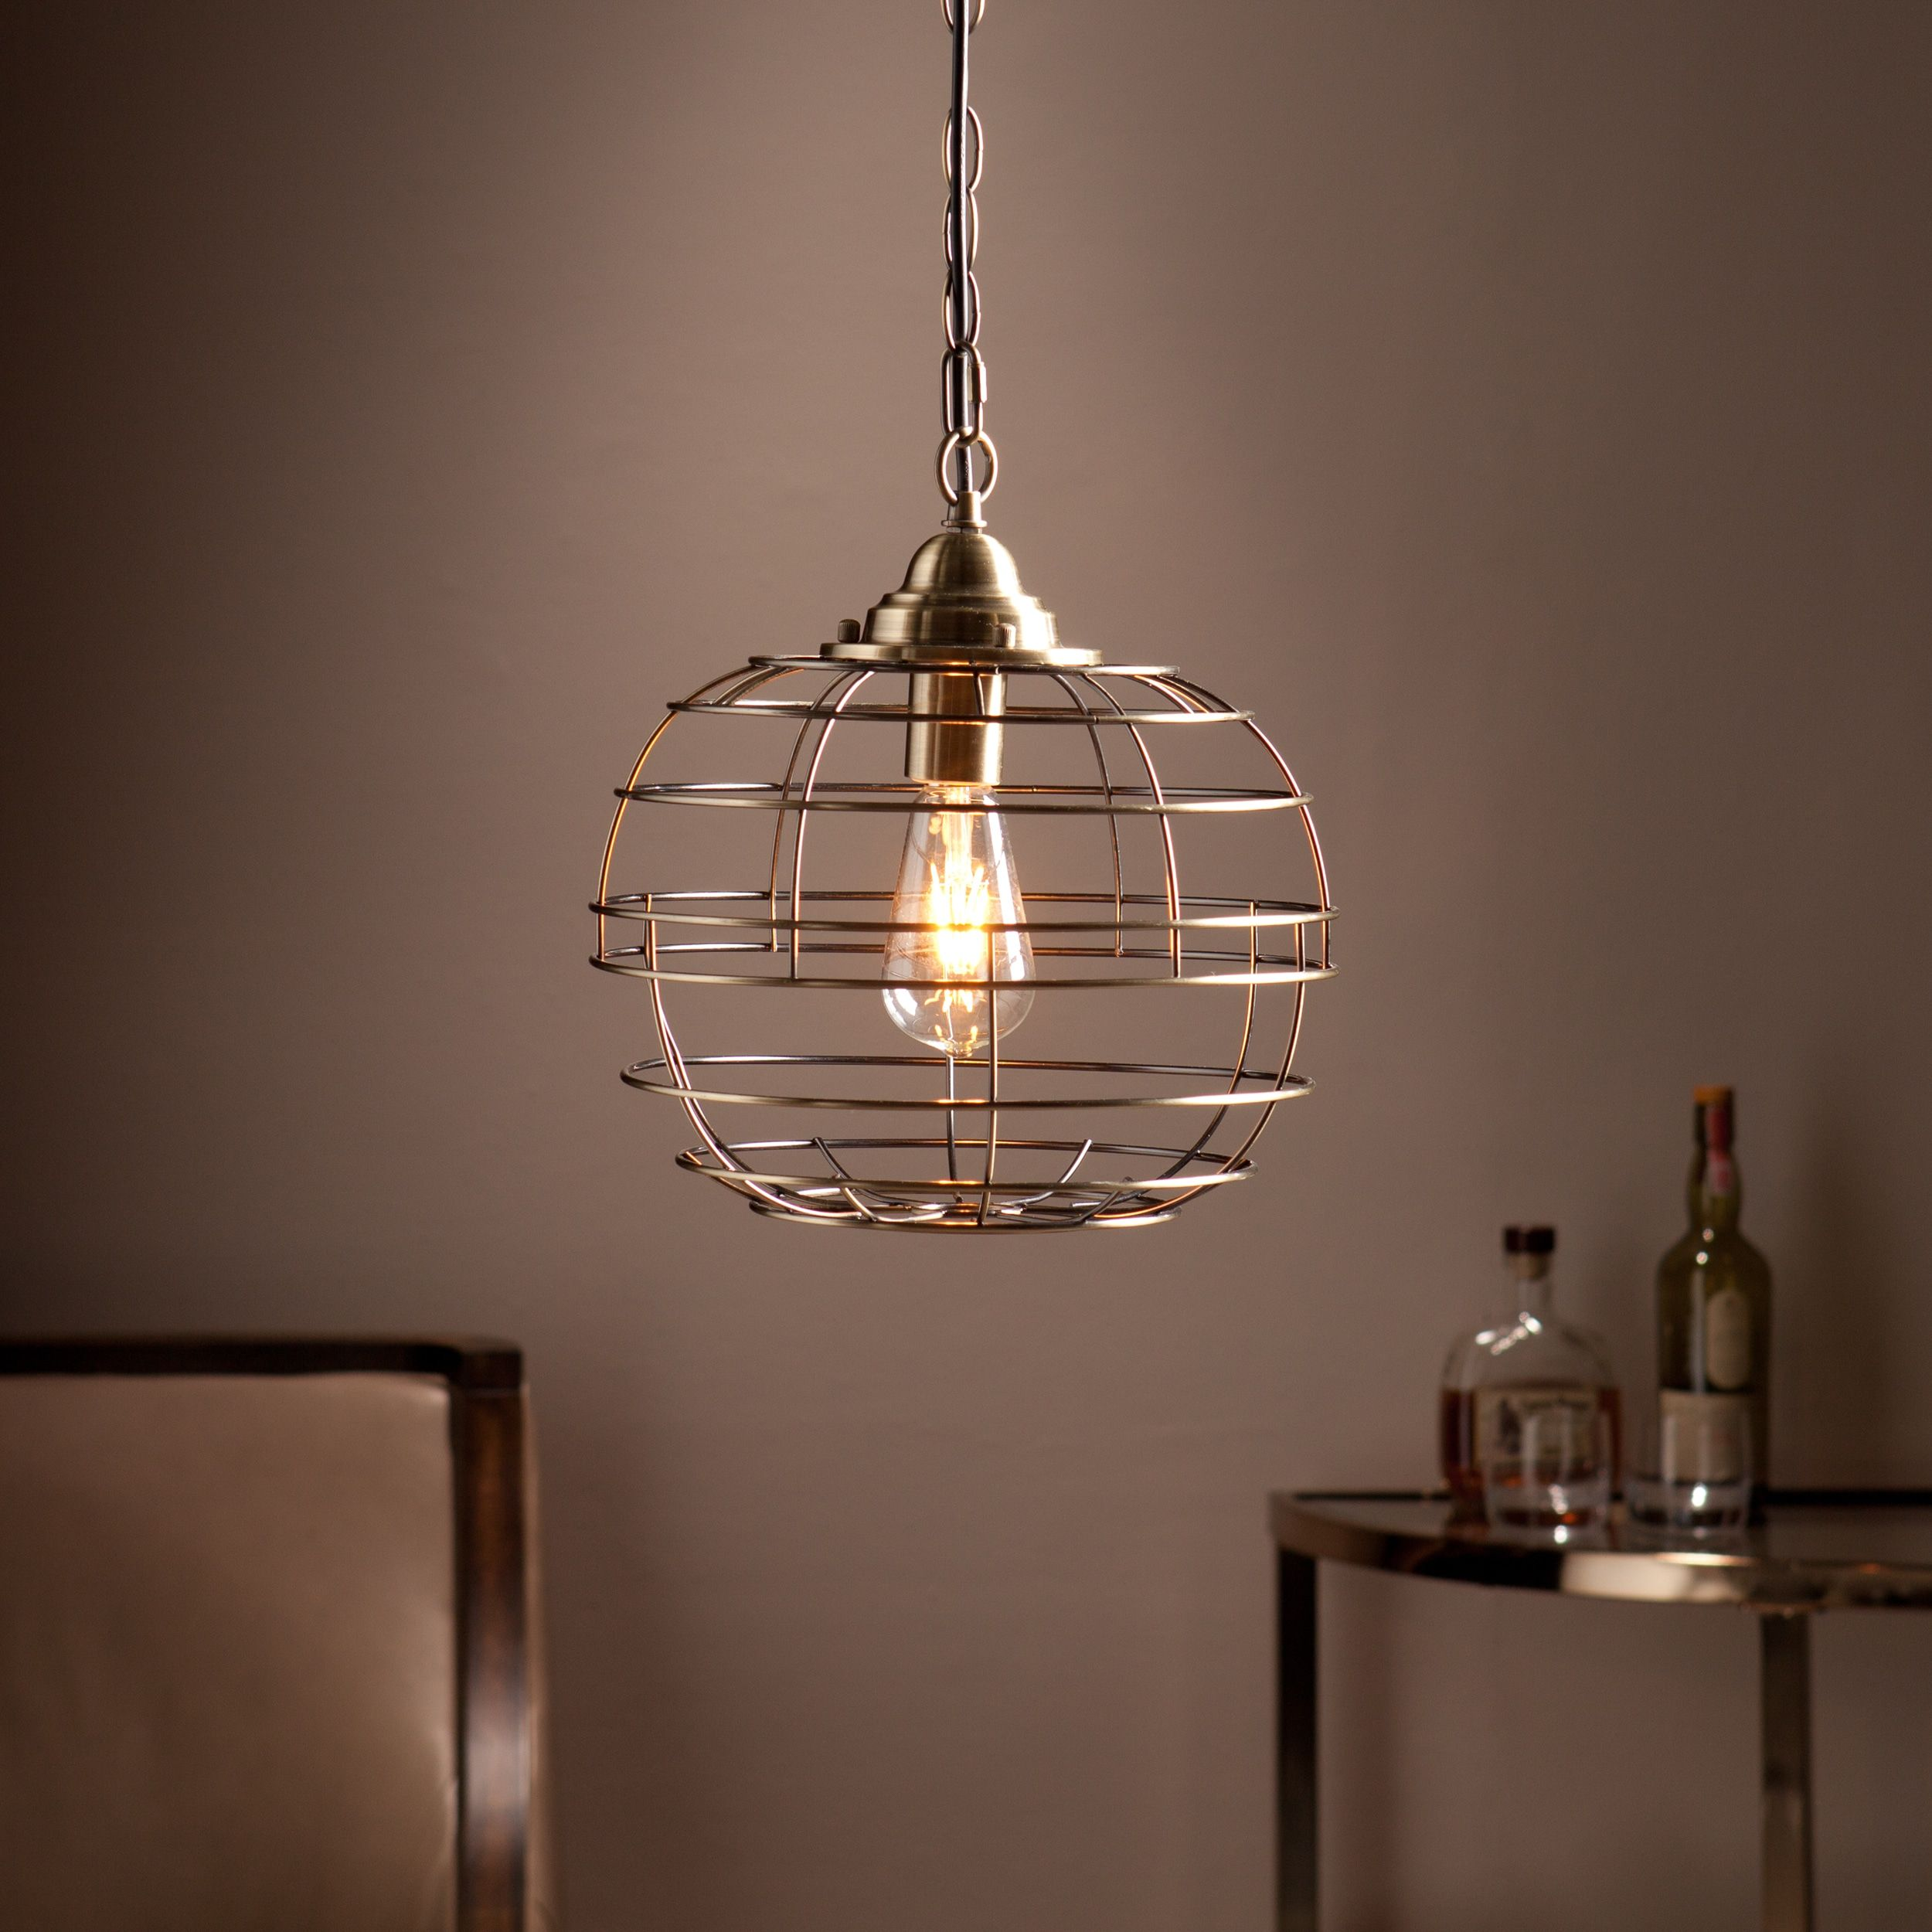 Overstock Pendant Lights Pleasing Harper Blvd Reade Pendant Light  Overstock Shopping  The Best Inspiration